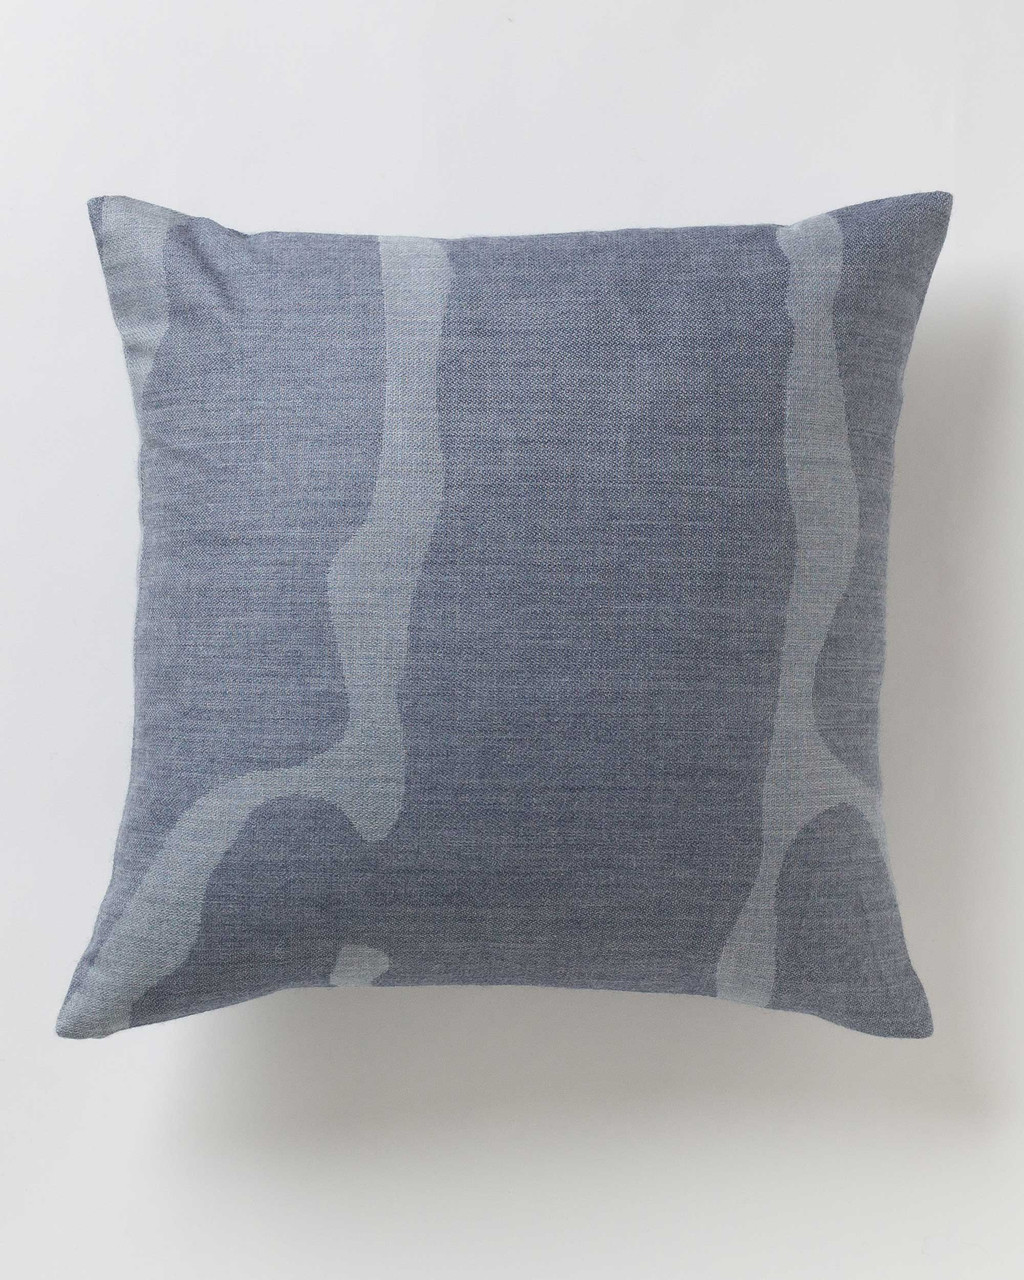 Alicia Adams Alpaca Zigby Pillow, alpaca pillow, alpaca throw pillow, alpaca decorative pillow, alpaca vs cashmere, denim blue and chambray blue alpaca throw pillow